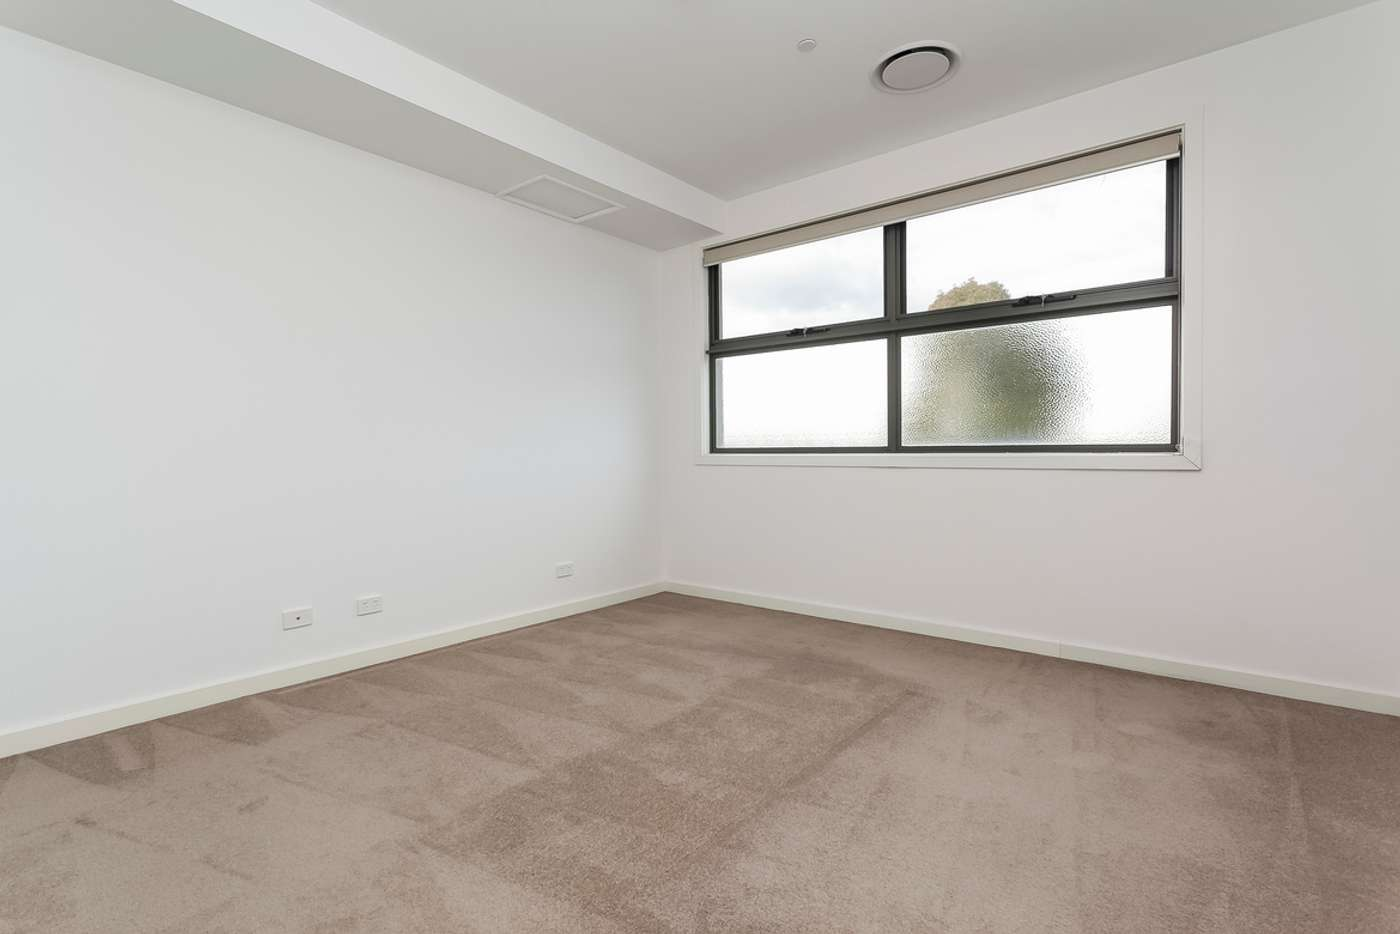 Sixth view of Homely apartment listing, 15/107 Whittens Lane, Doncaster VIC 3108